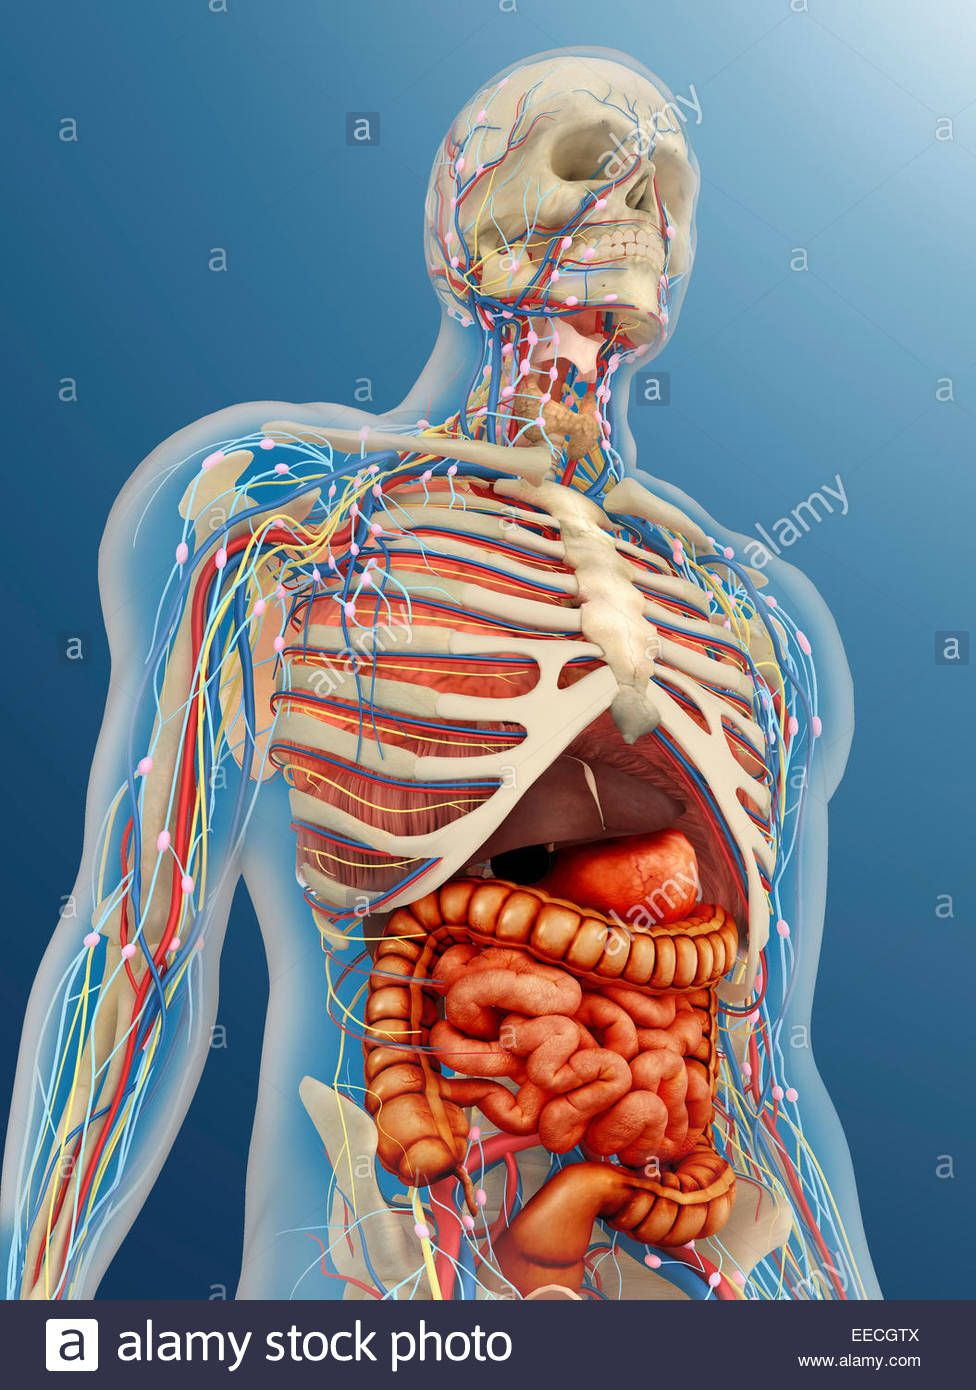 Pictures Of The Internal Organs Of The Human Body Human Body